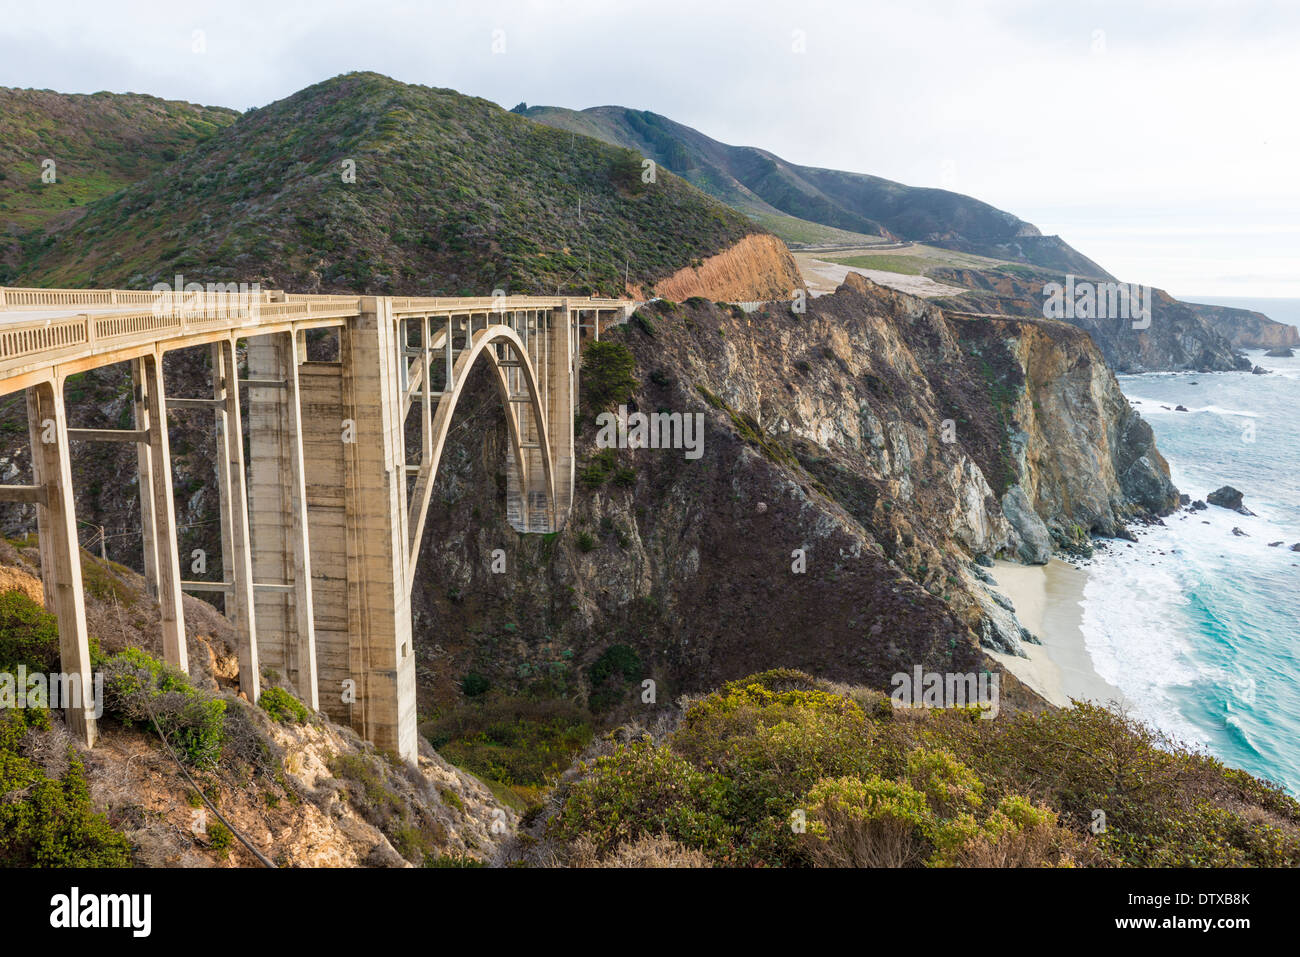 The Historic Bixby Bridge on the Pacific Coast Highway California Big Sur - Stock Image